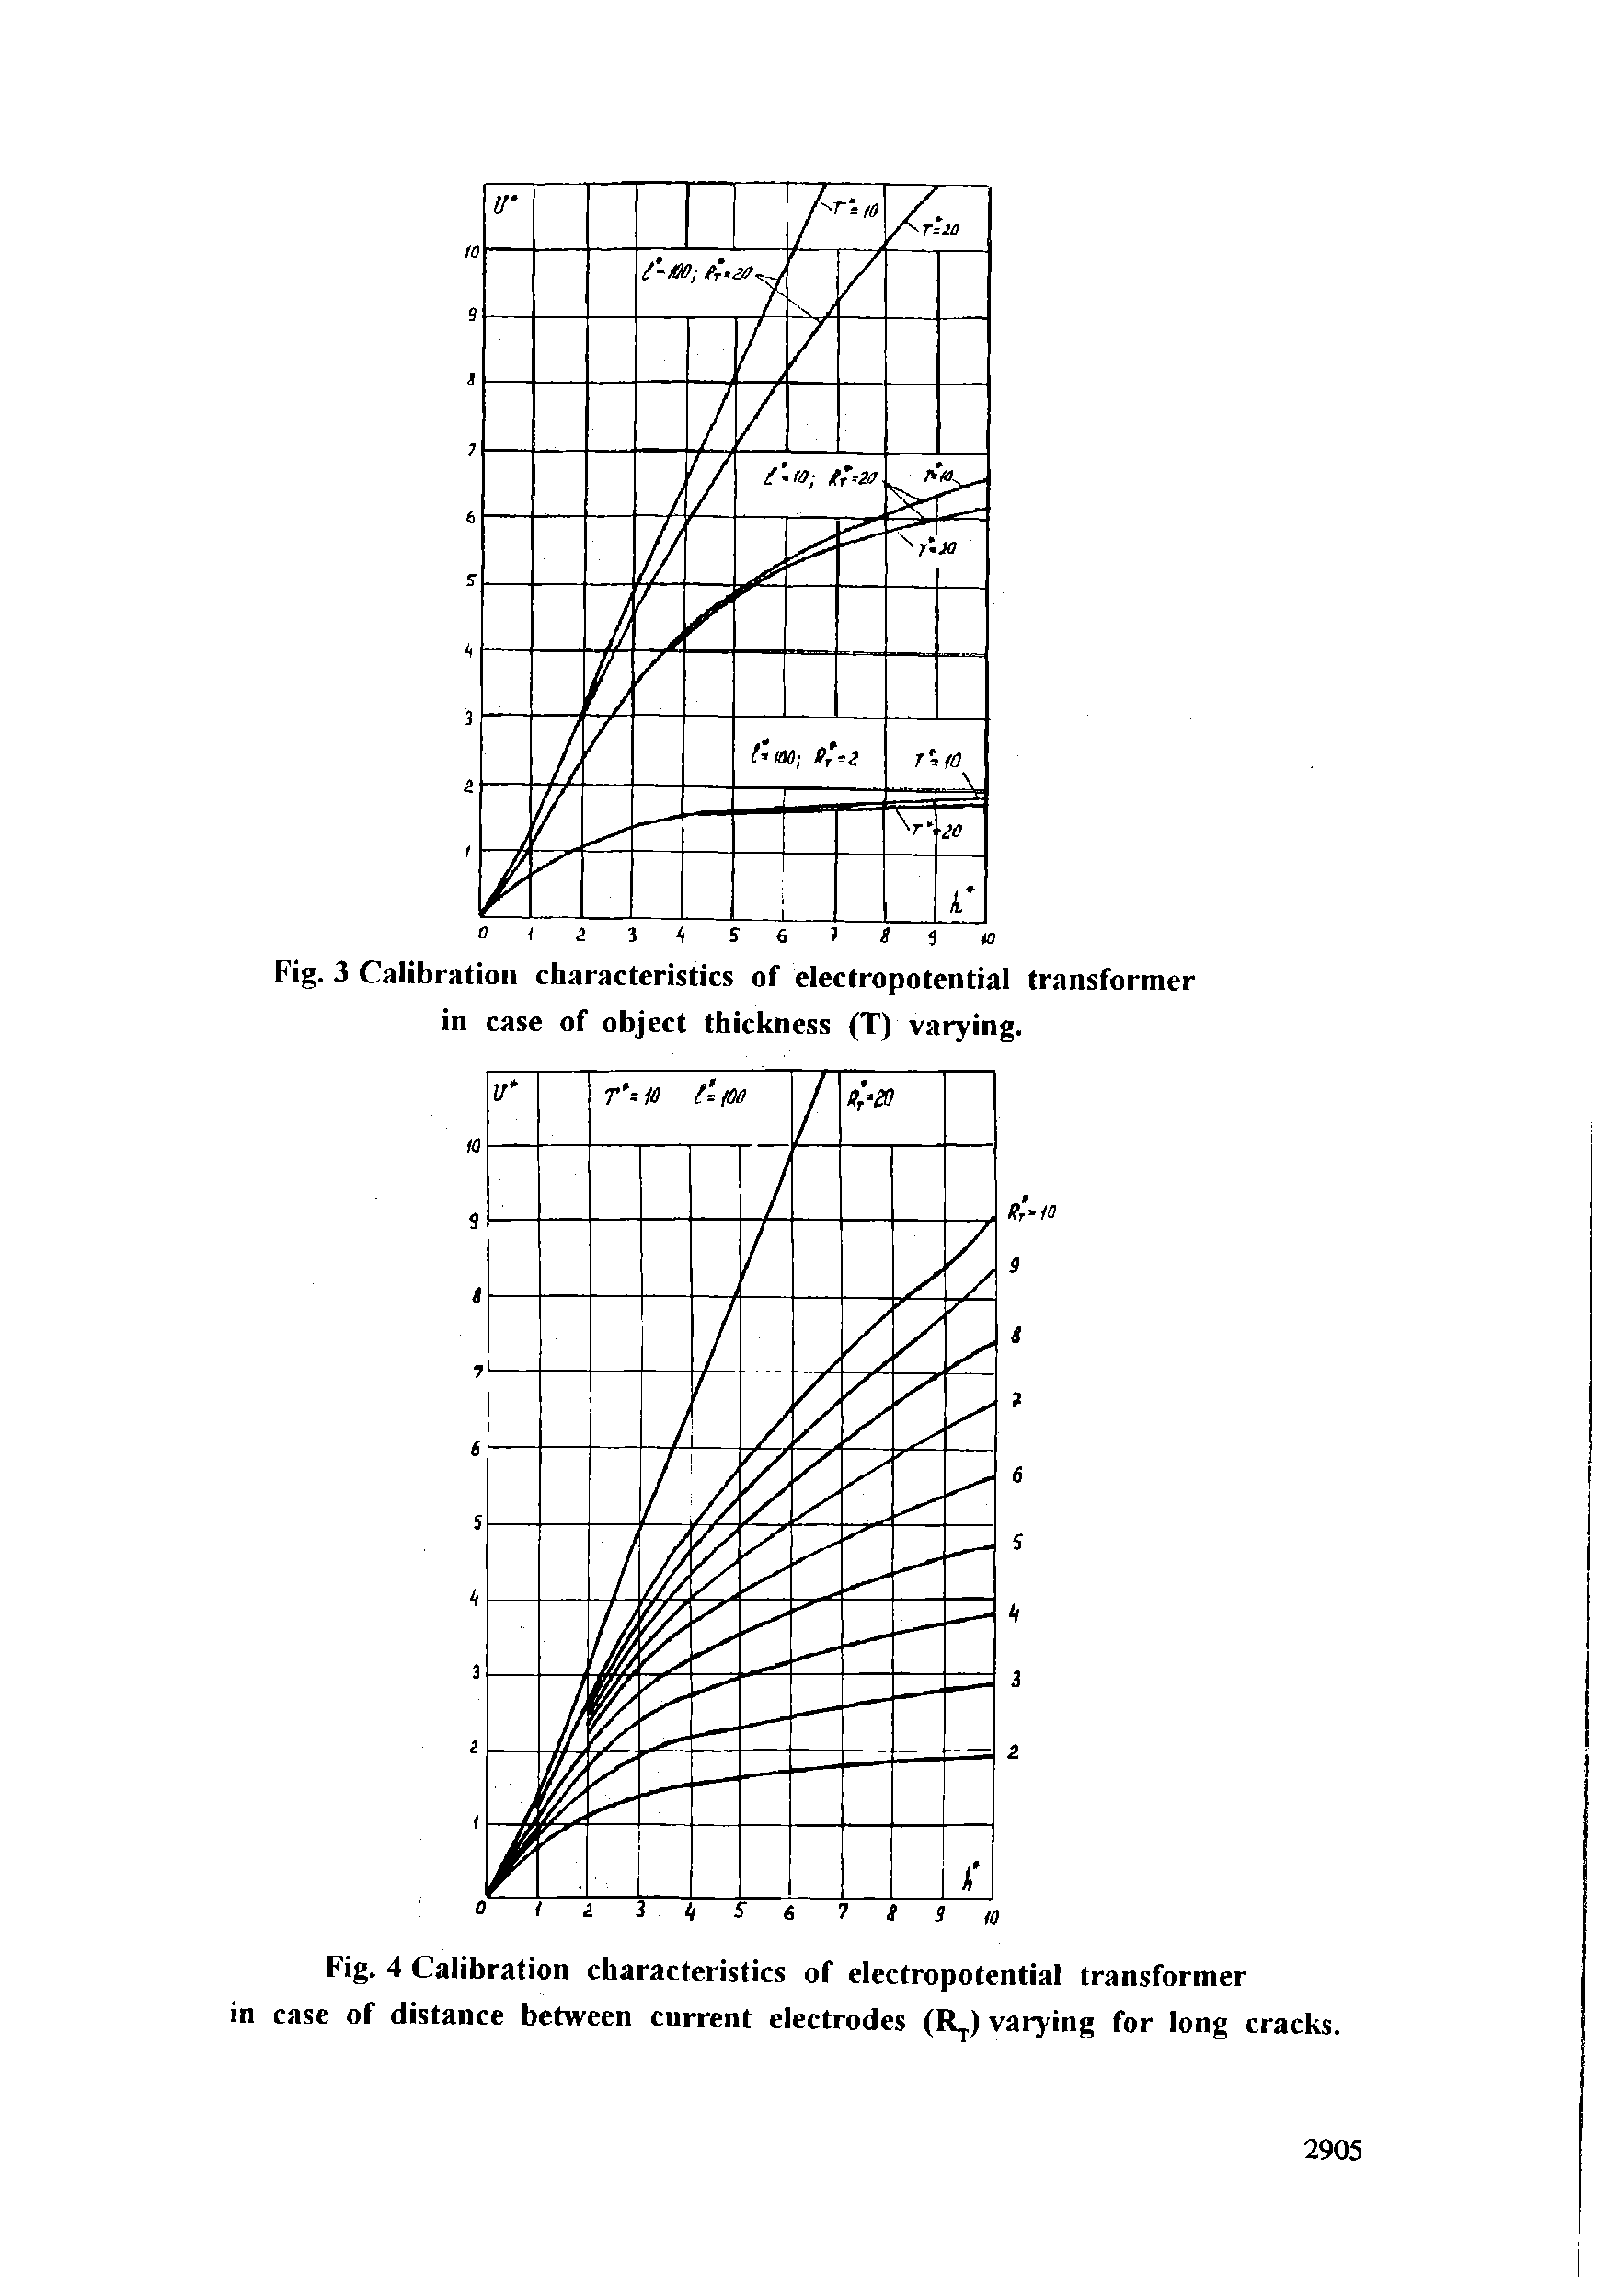 "Fig. 4 <a href=""/info/calibration_characteristics"">Calibration characteristics</a> of electropotential transformer in case of distance between current electrodes (R. ) varying for long cracks."